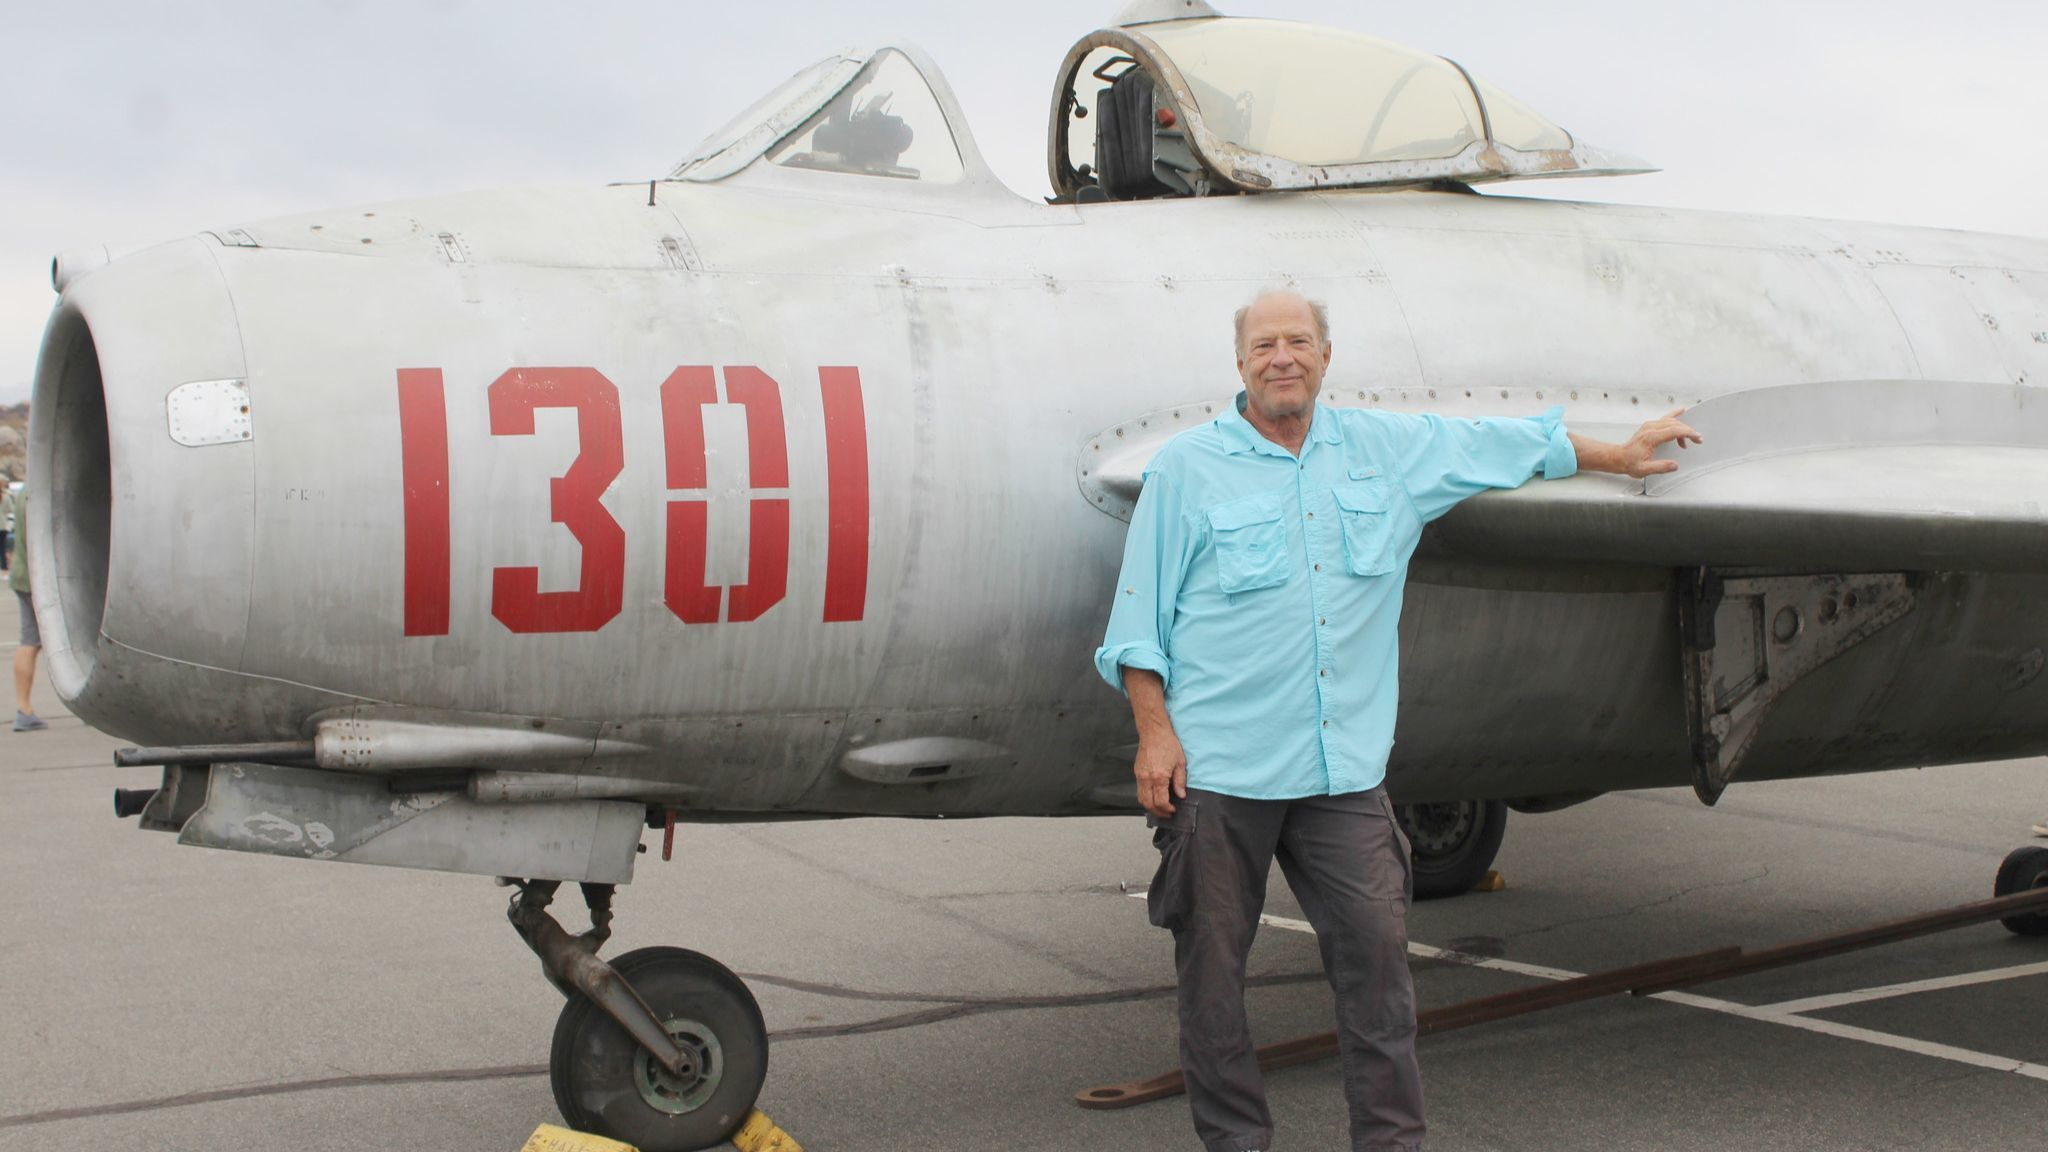 Bill Bourque displays a 1958 MiG-17 high-subsonic fighter aircraft at the Ramona Air Fair & Fly-in. The Russian aircraft flew throughout Europe in its heyday.